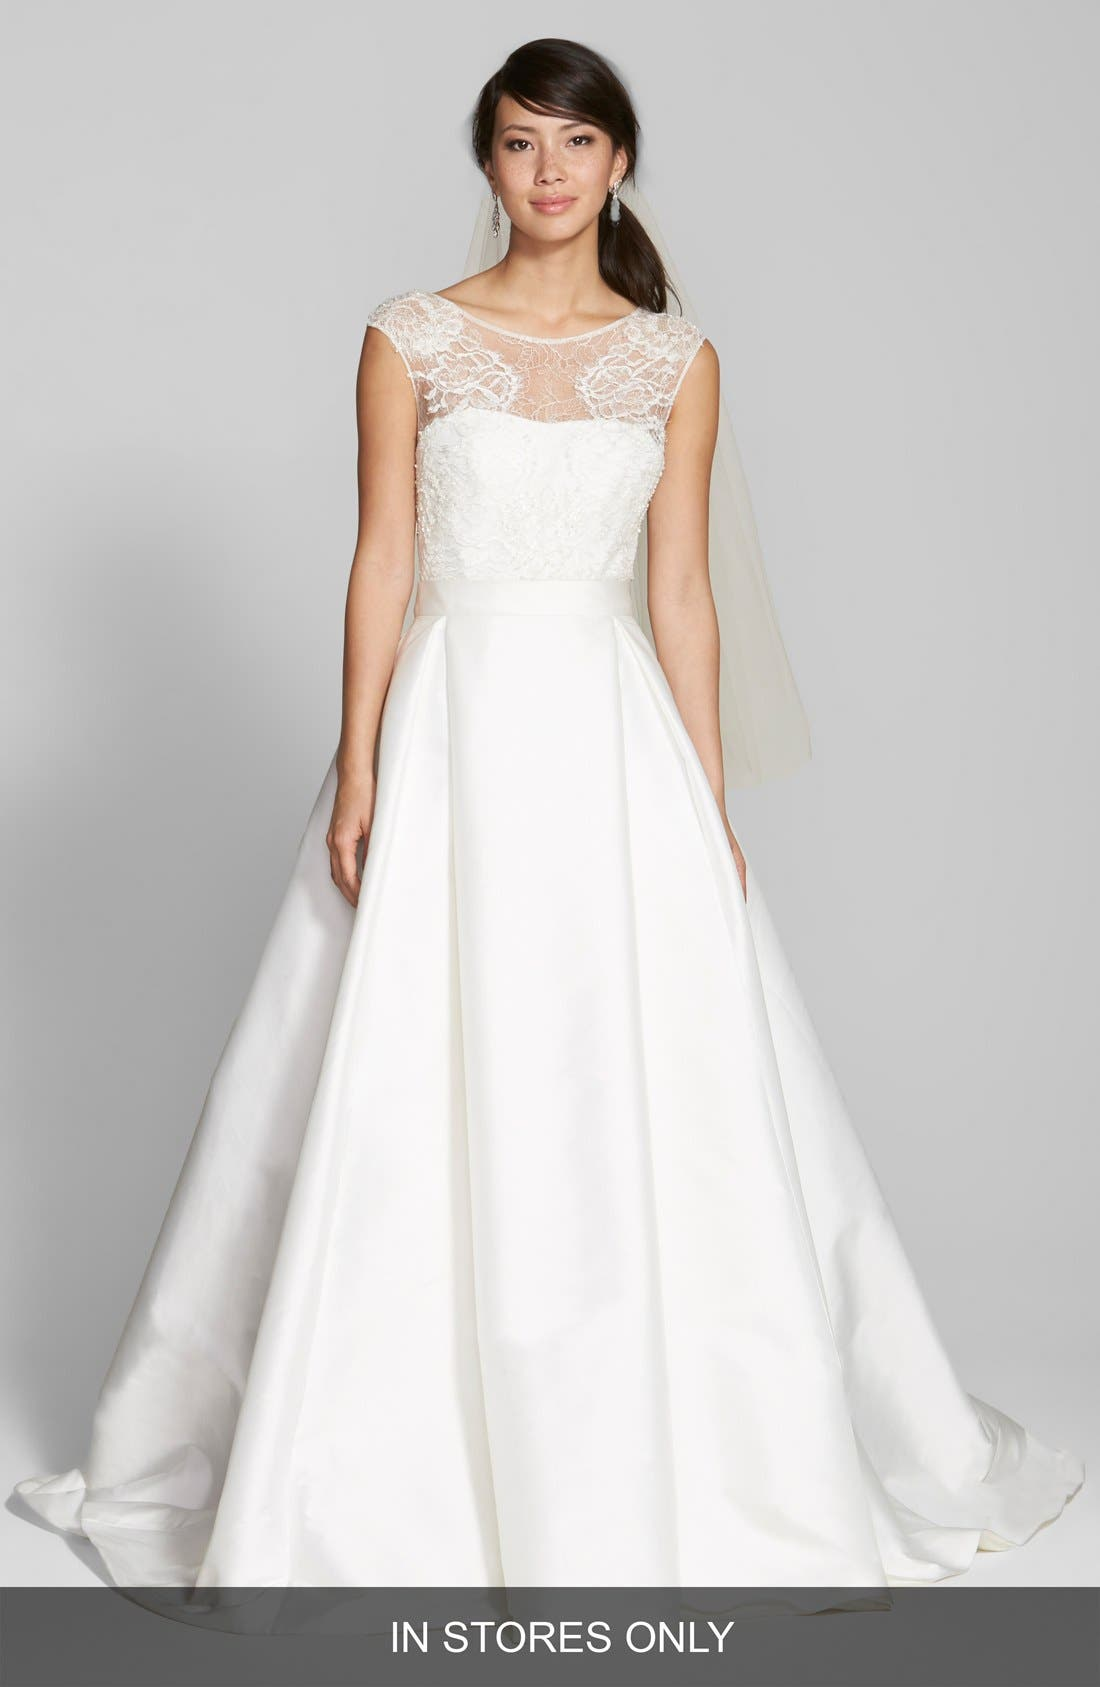 Lace & Swiss Dot Tulle Dress with Mikado Overskirt,                         Main,                         color, IVORY